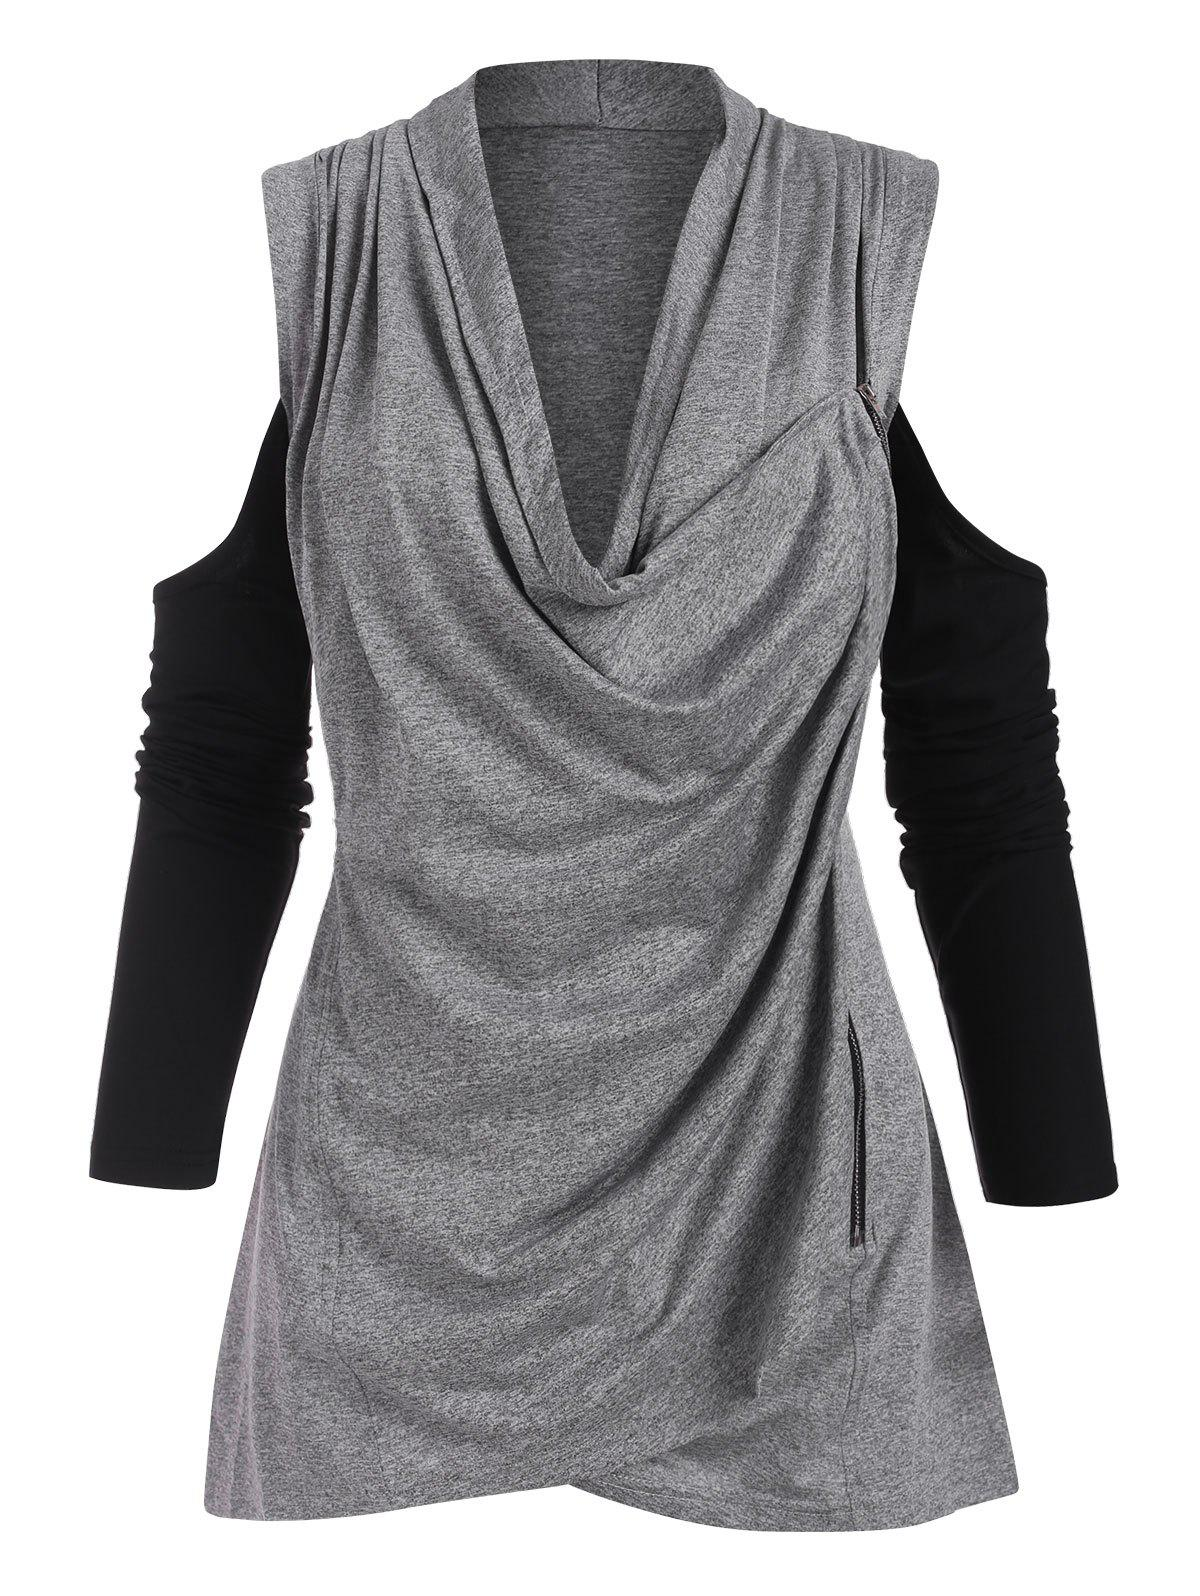 Cowl Neck Zippered Front Cold Shoulder Top - GRAY XXXL